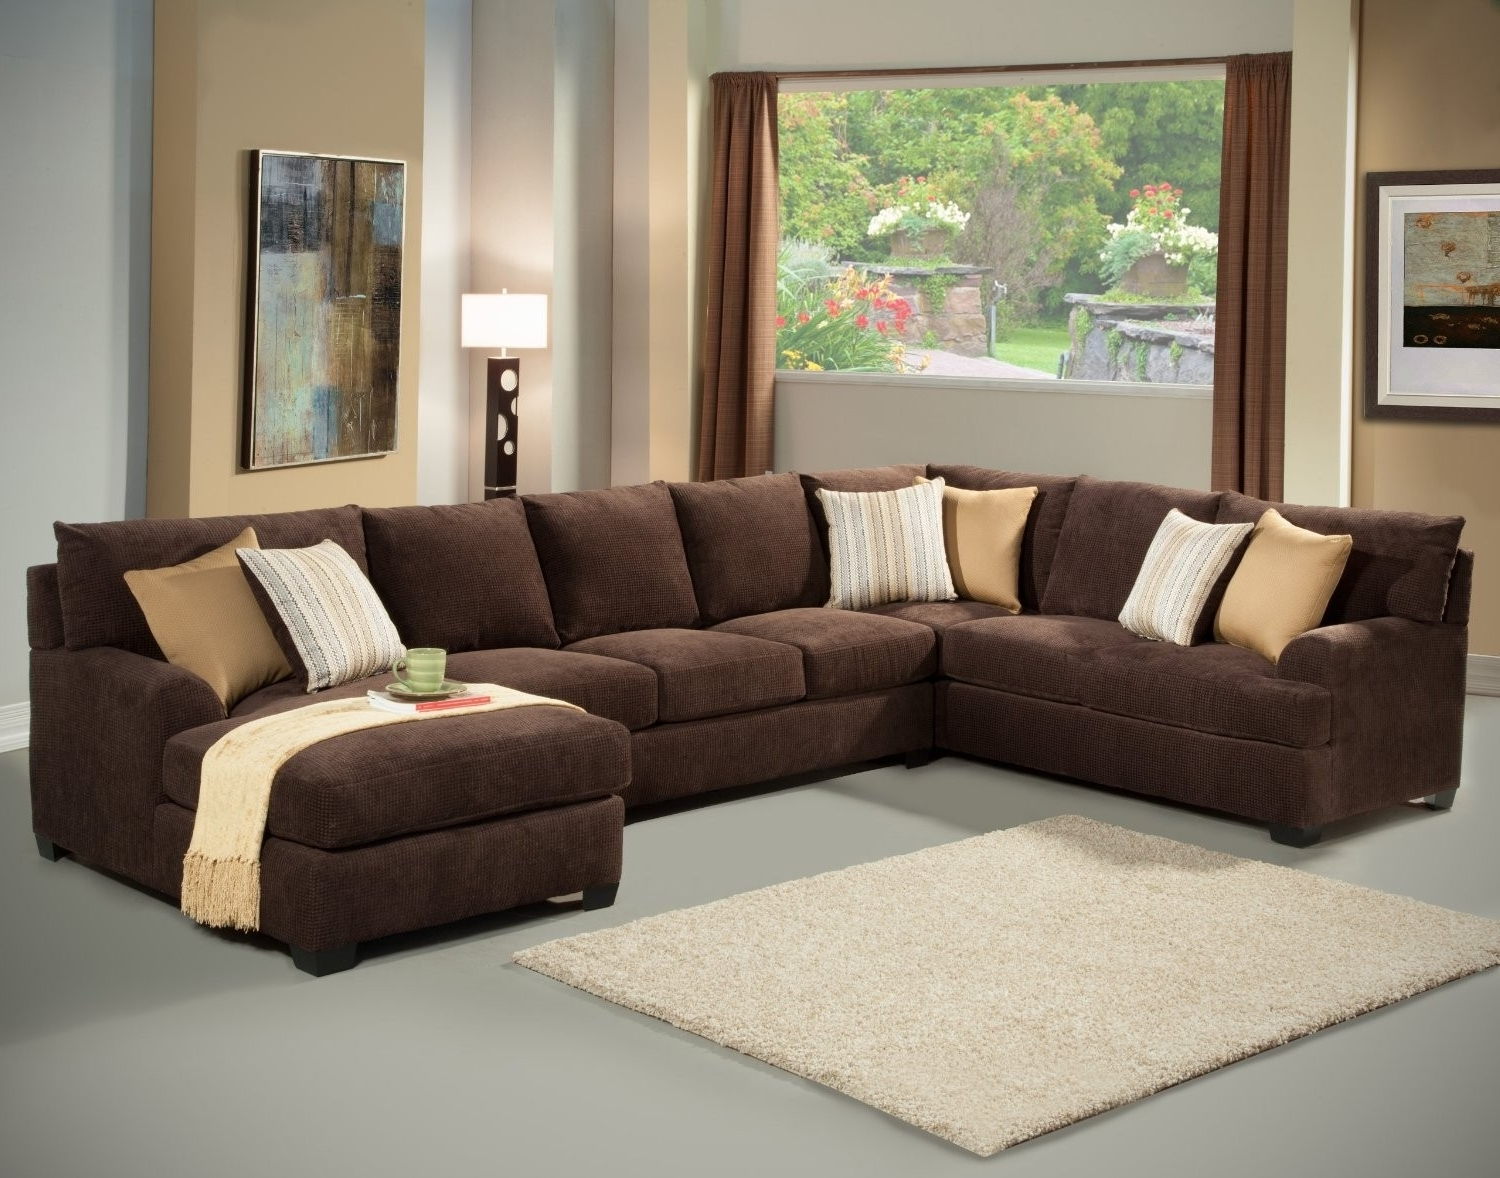 Phoenix Sectional Sofas Pertaining To Most Up To Date Lovely Sectional Sofa Phoenix – Buildsimplehome (View 11 of 15)